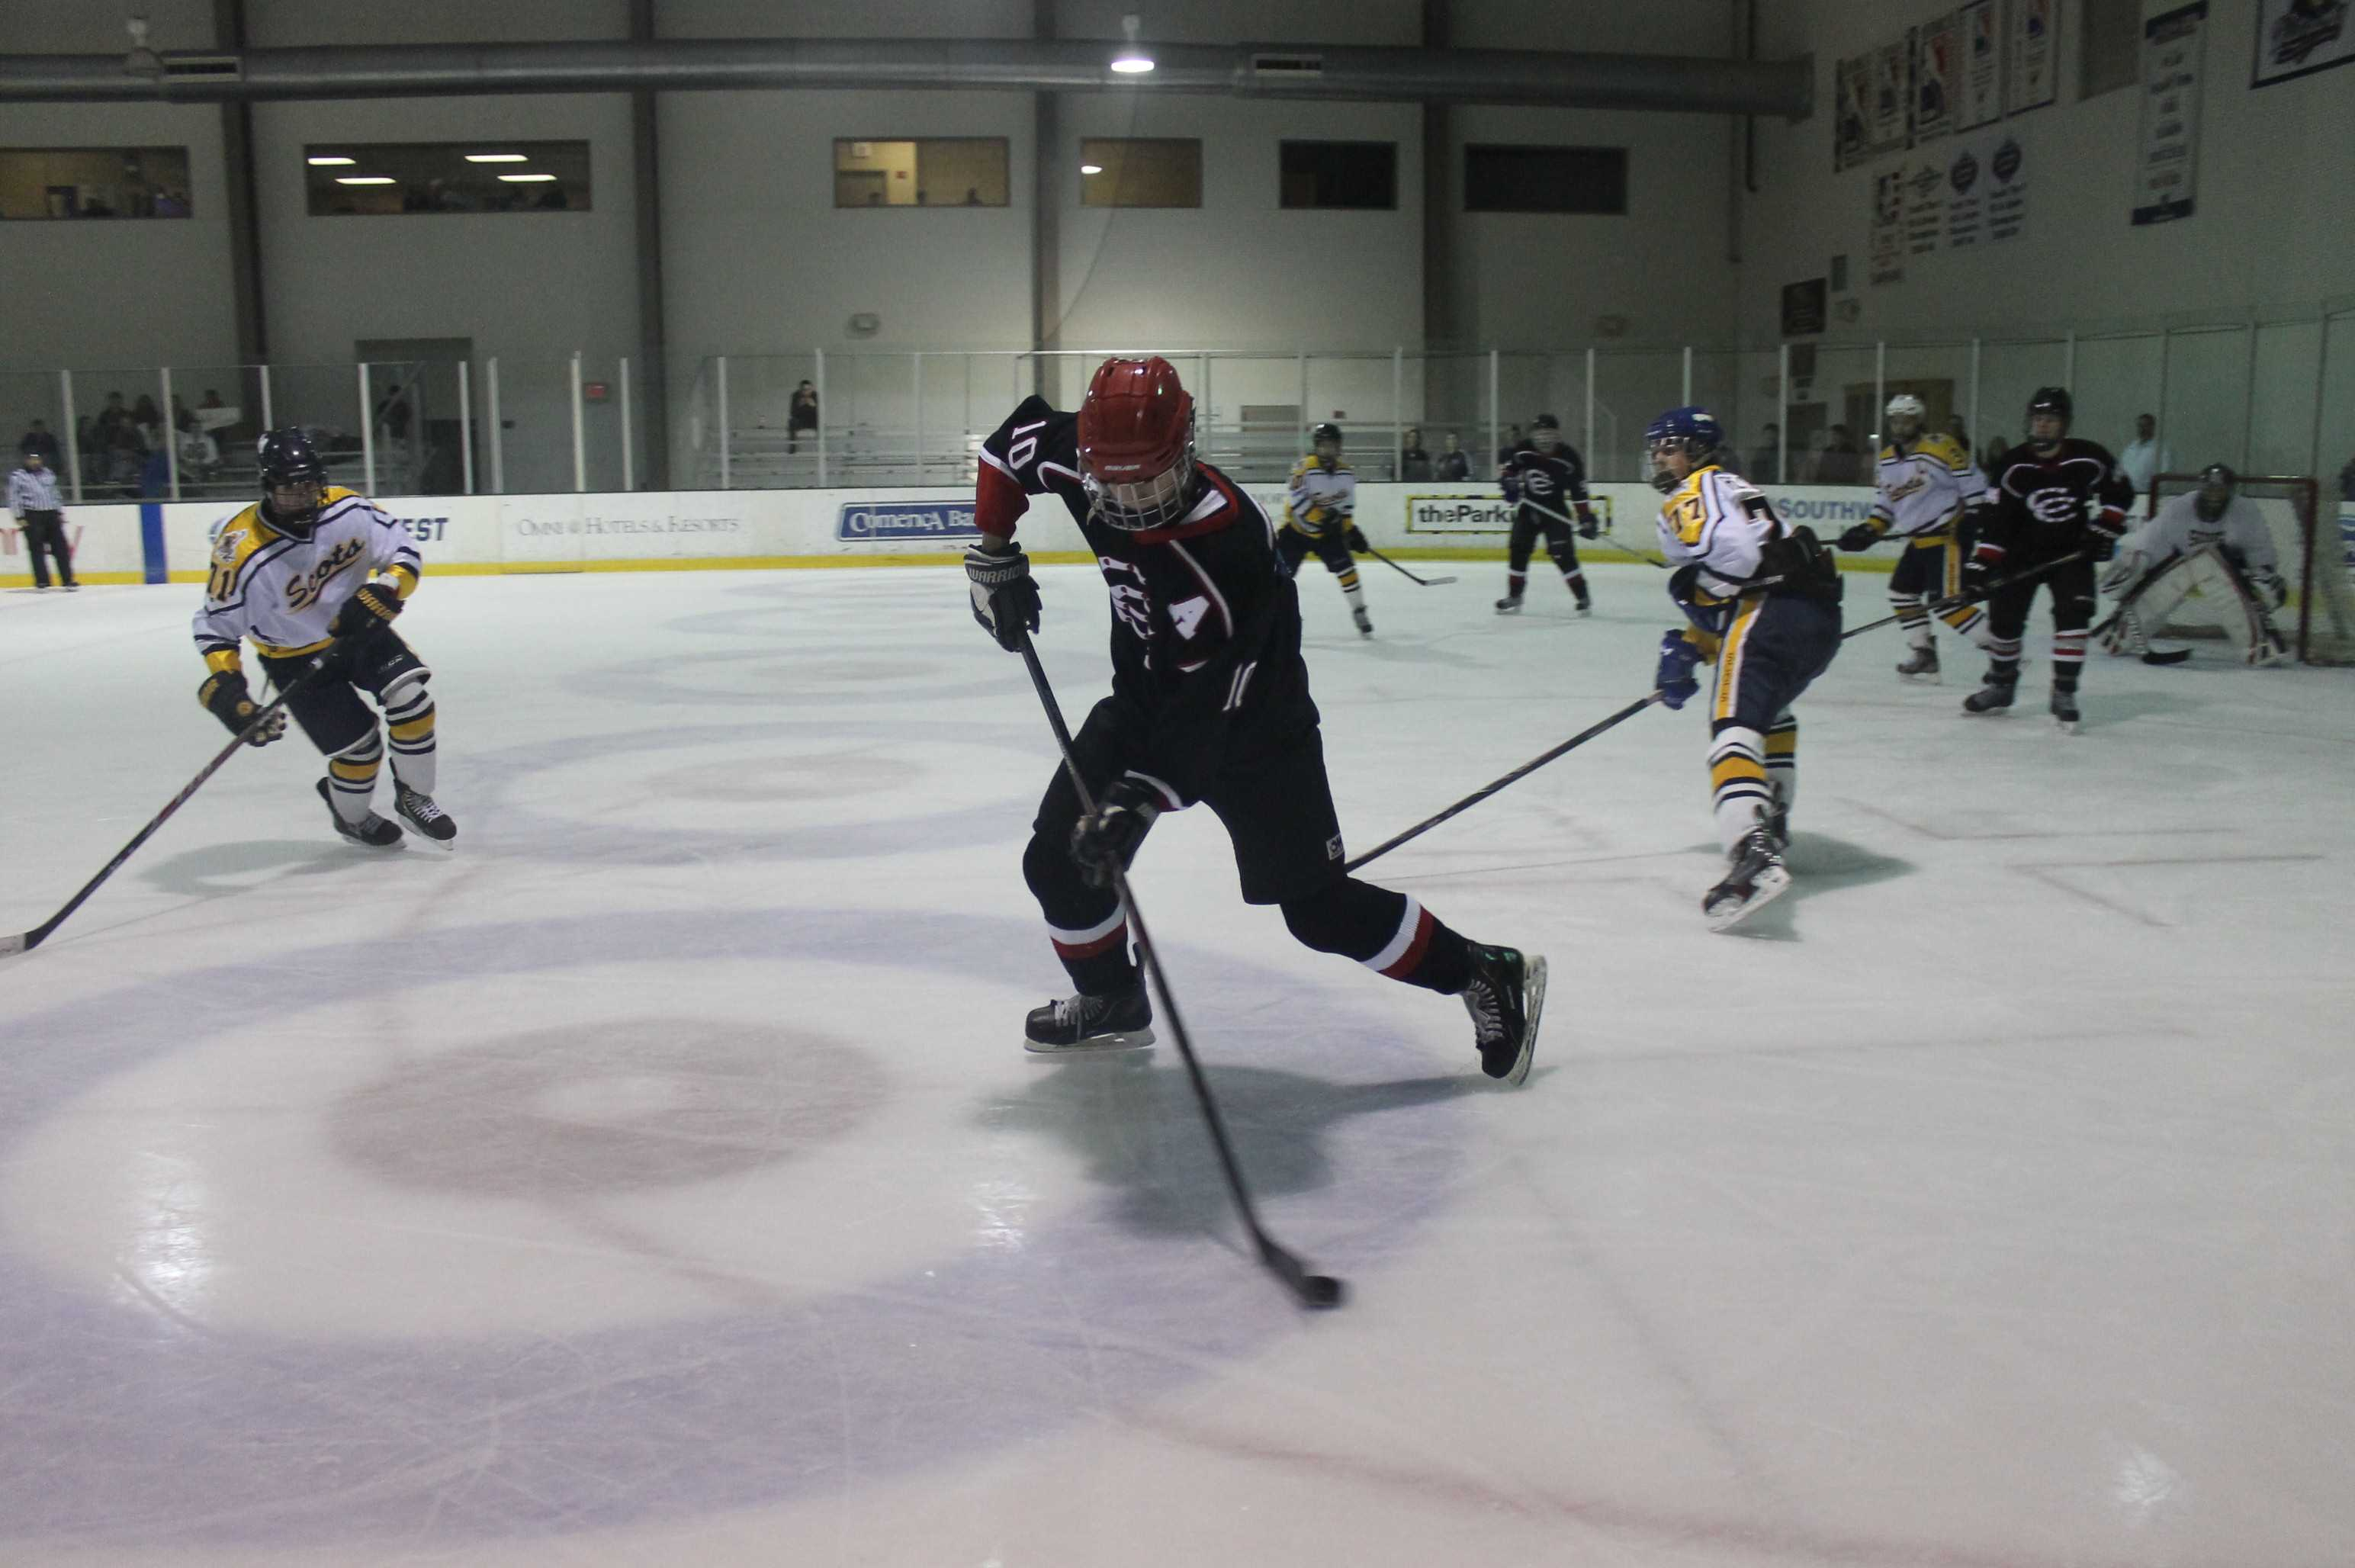 Junior forward James Reaman skates down the ice to shoot the puck last season on December 18th against Highland Park. Coppell went on to win 9-4. Photo by Stephanie Alexander.